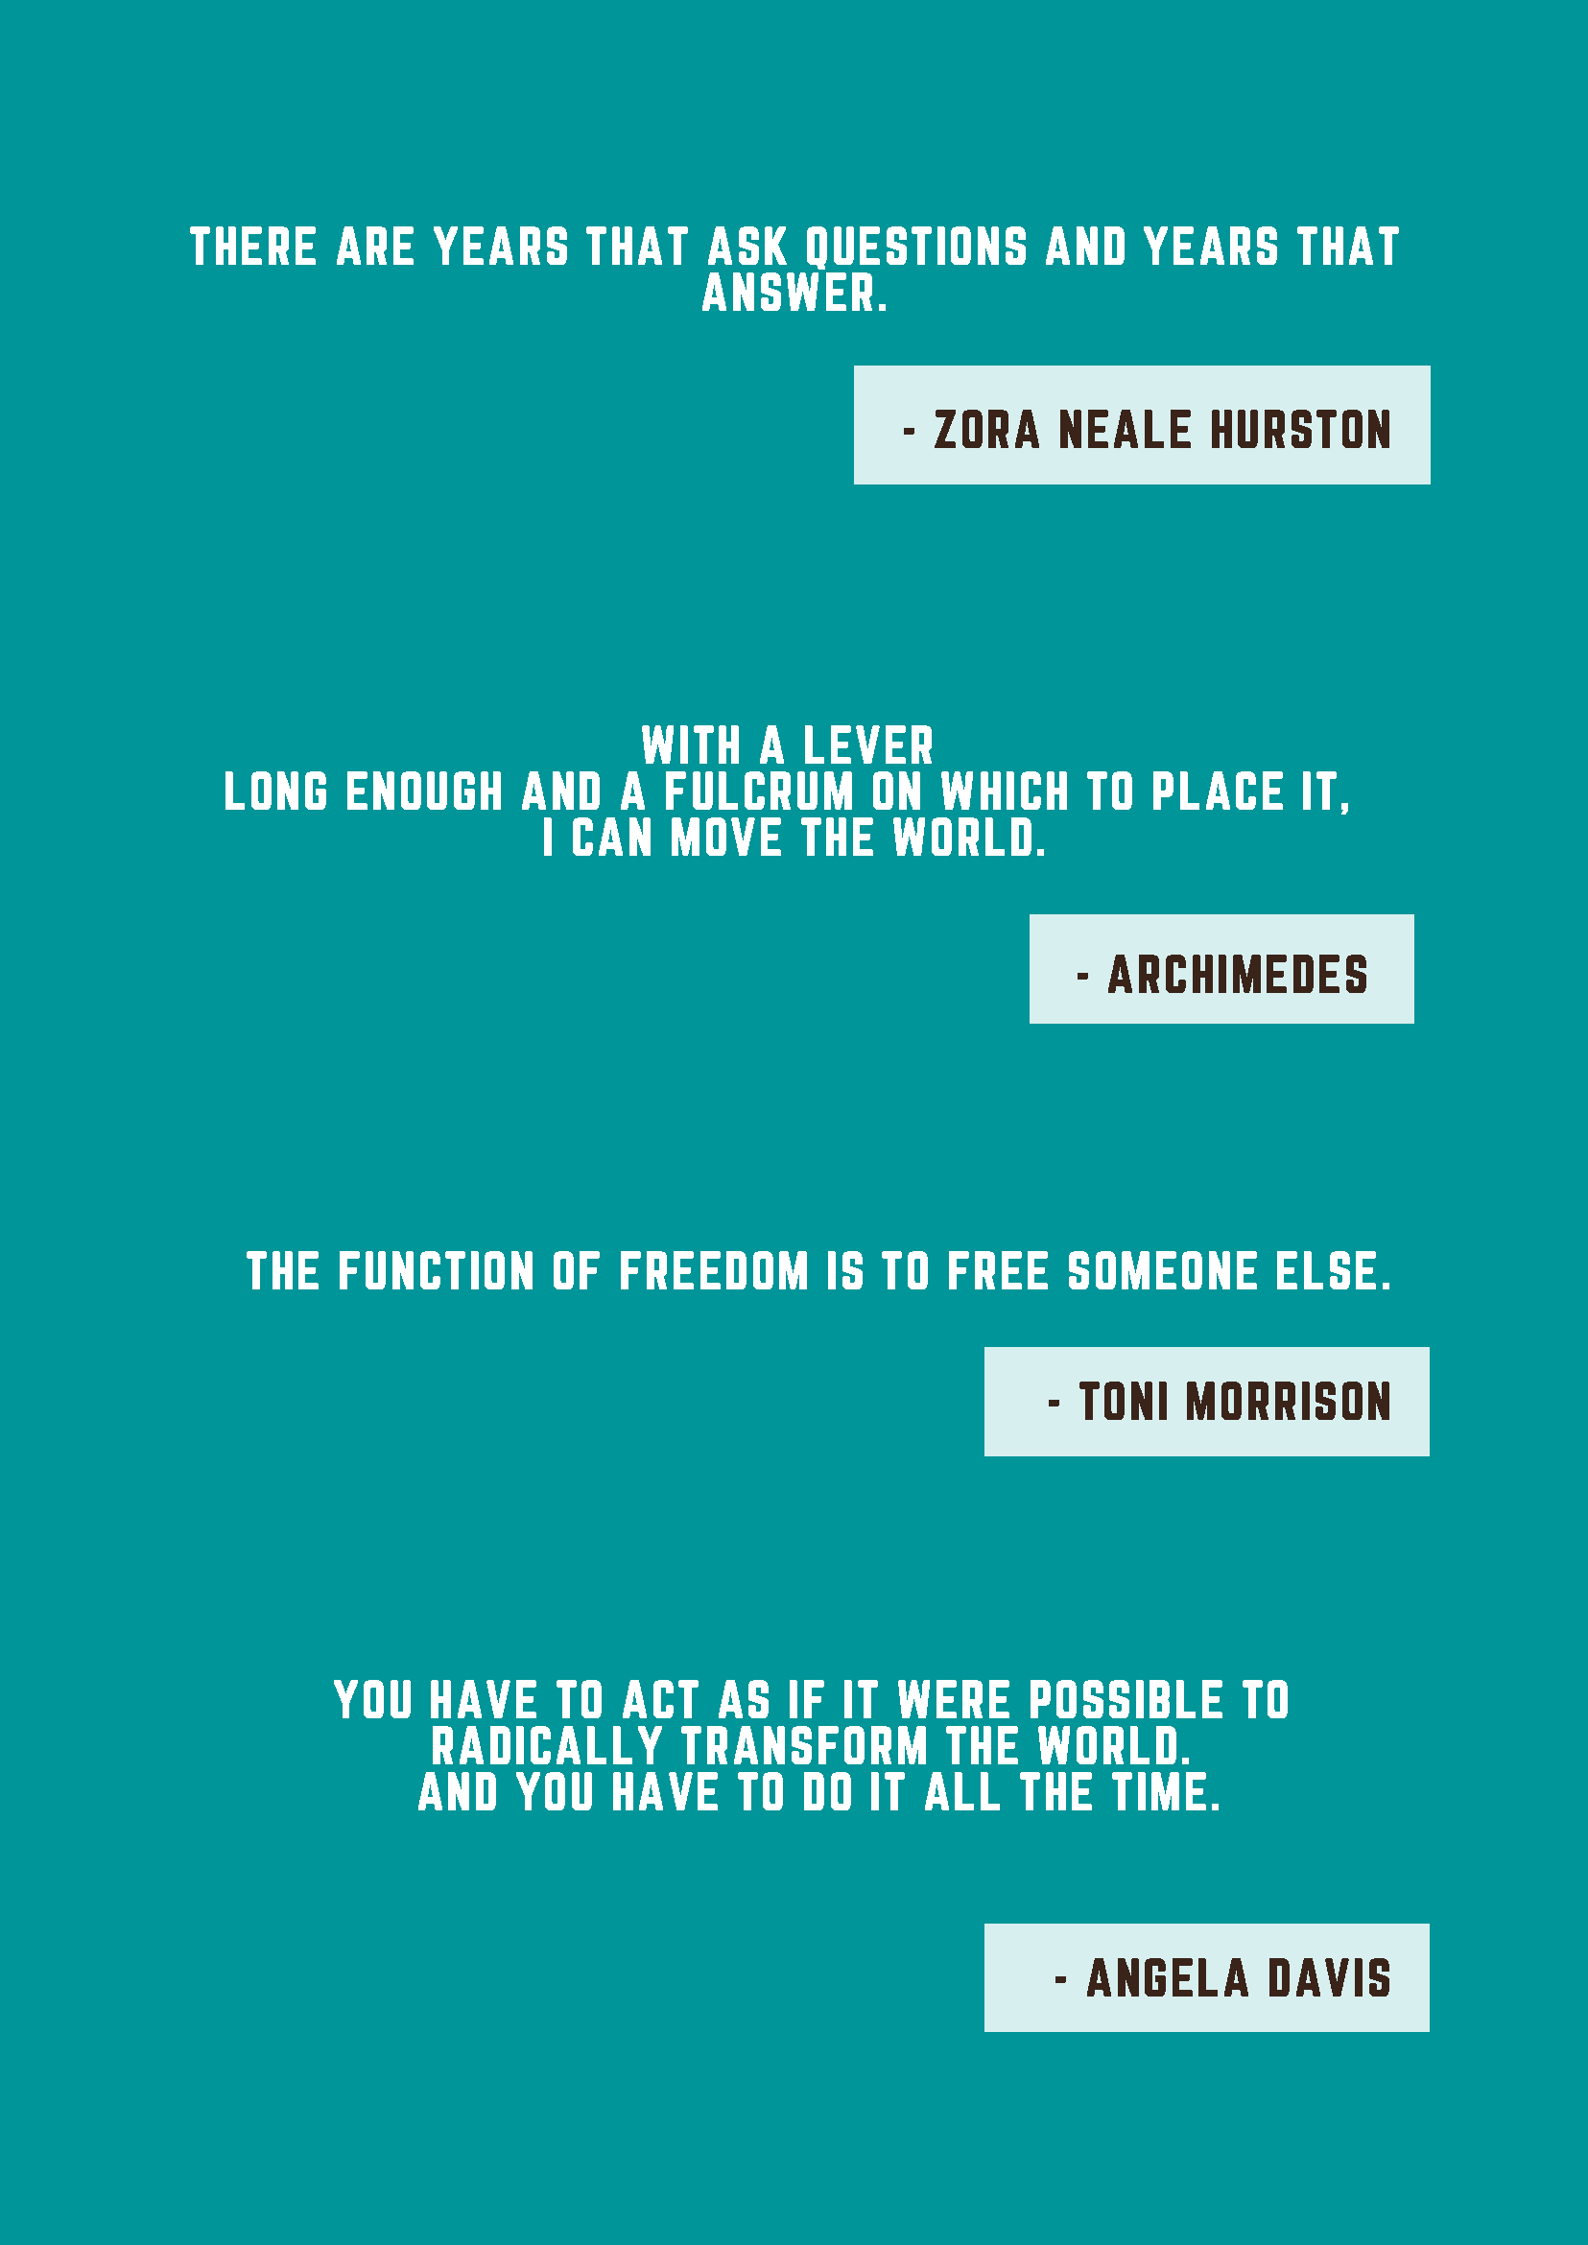 Quotes related to social change by Zora Neale Hurston, Archimedes, Toni Morrison, and Angela Davis